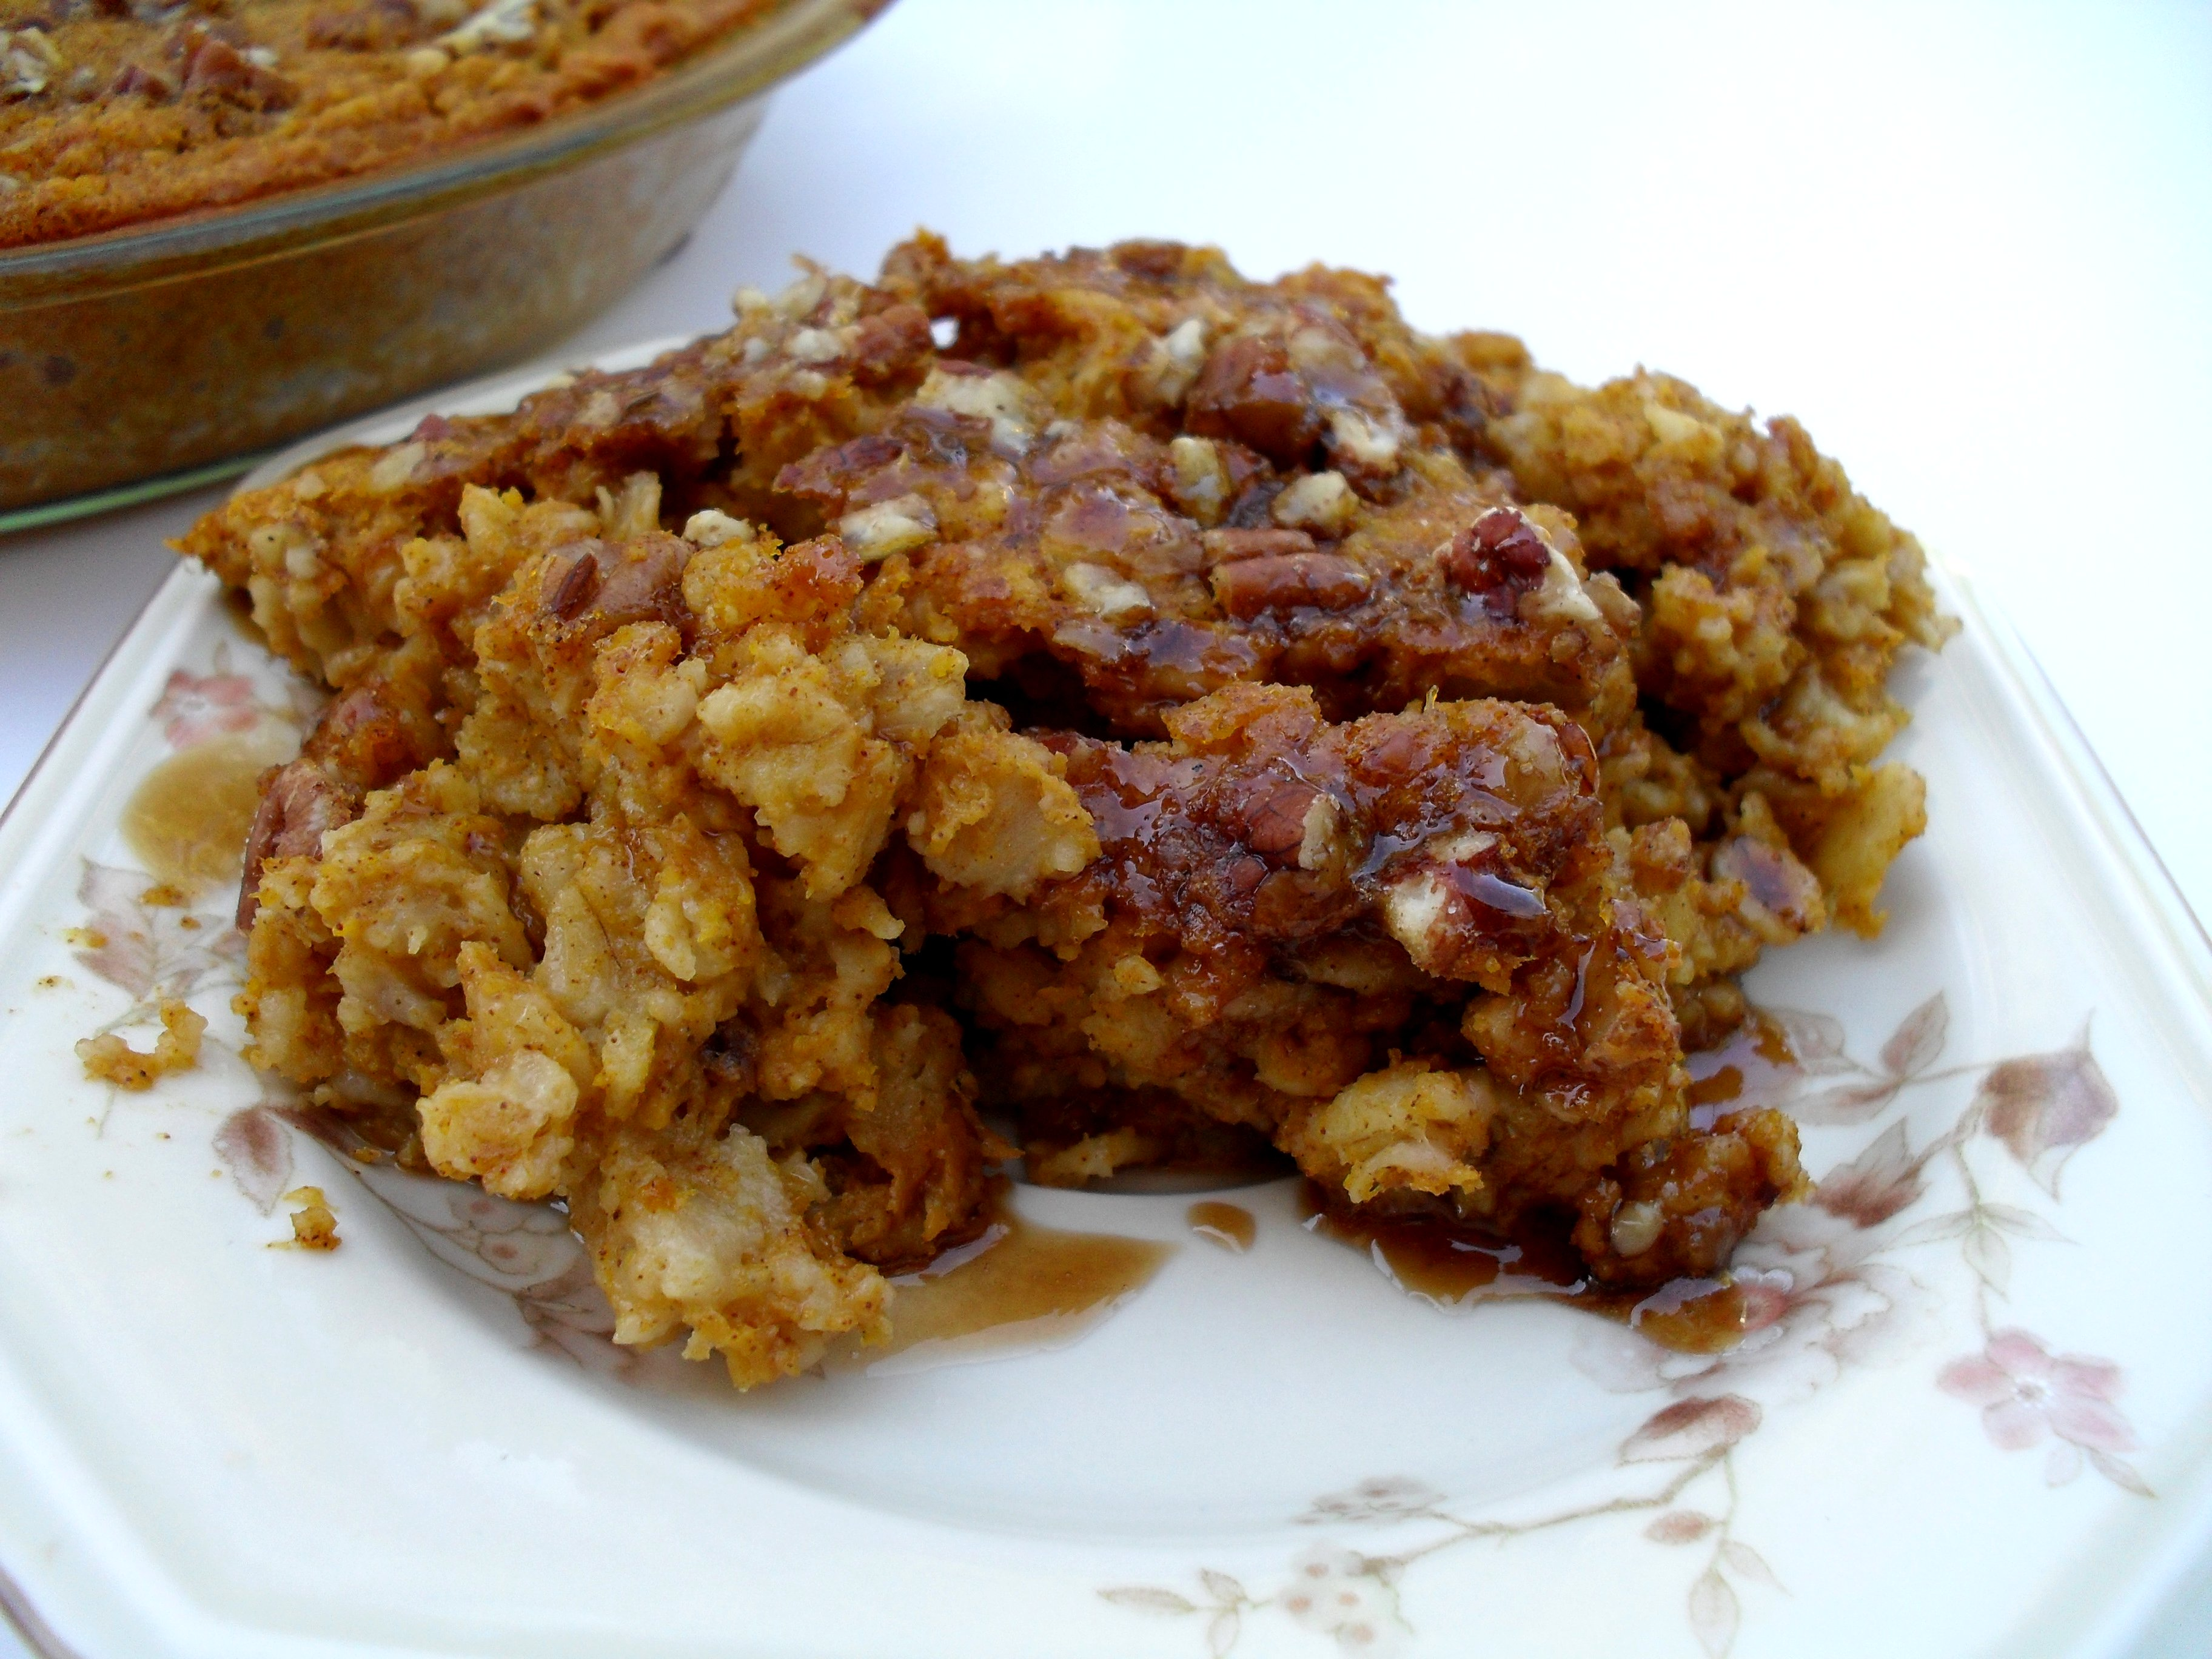 ... September 28, 2011 at 3648 × 2736 in Pumpkin Pie Baked Oatmeal